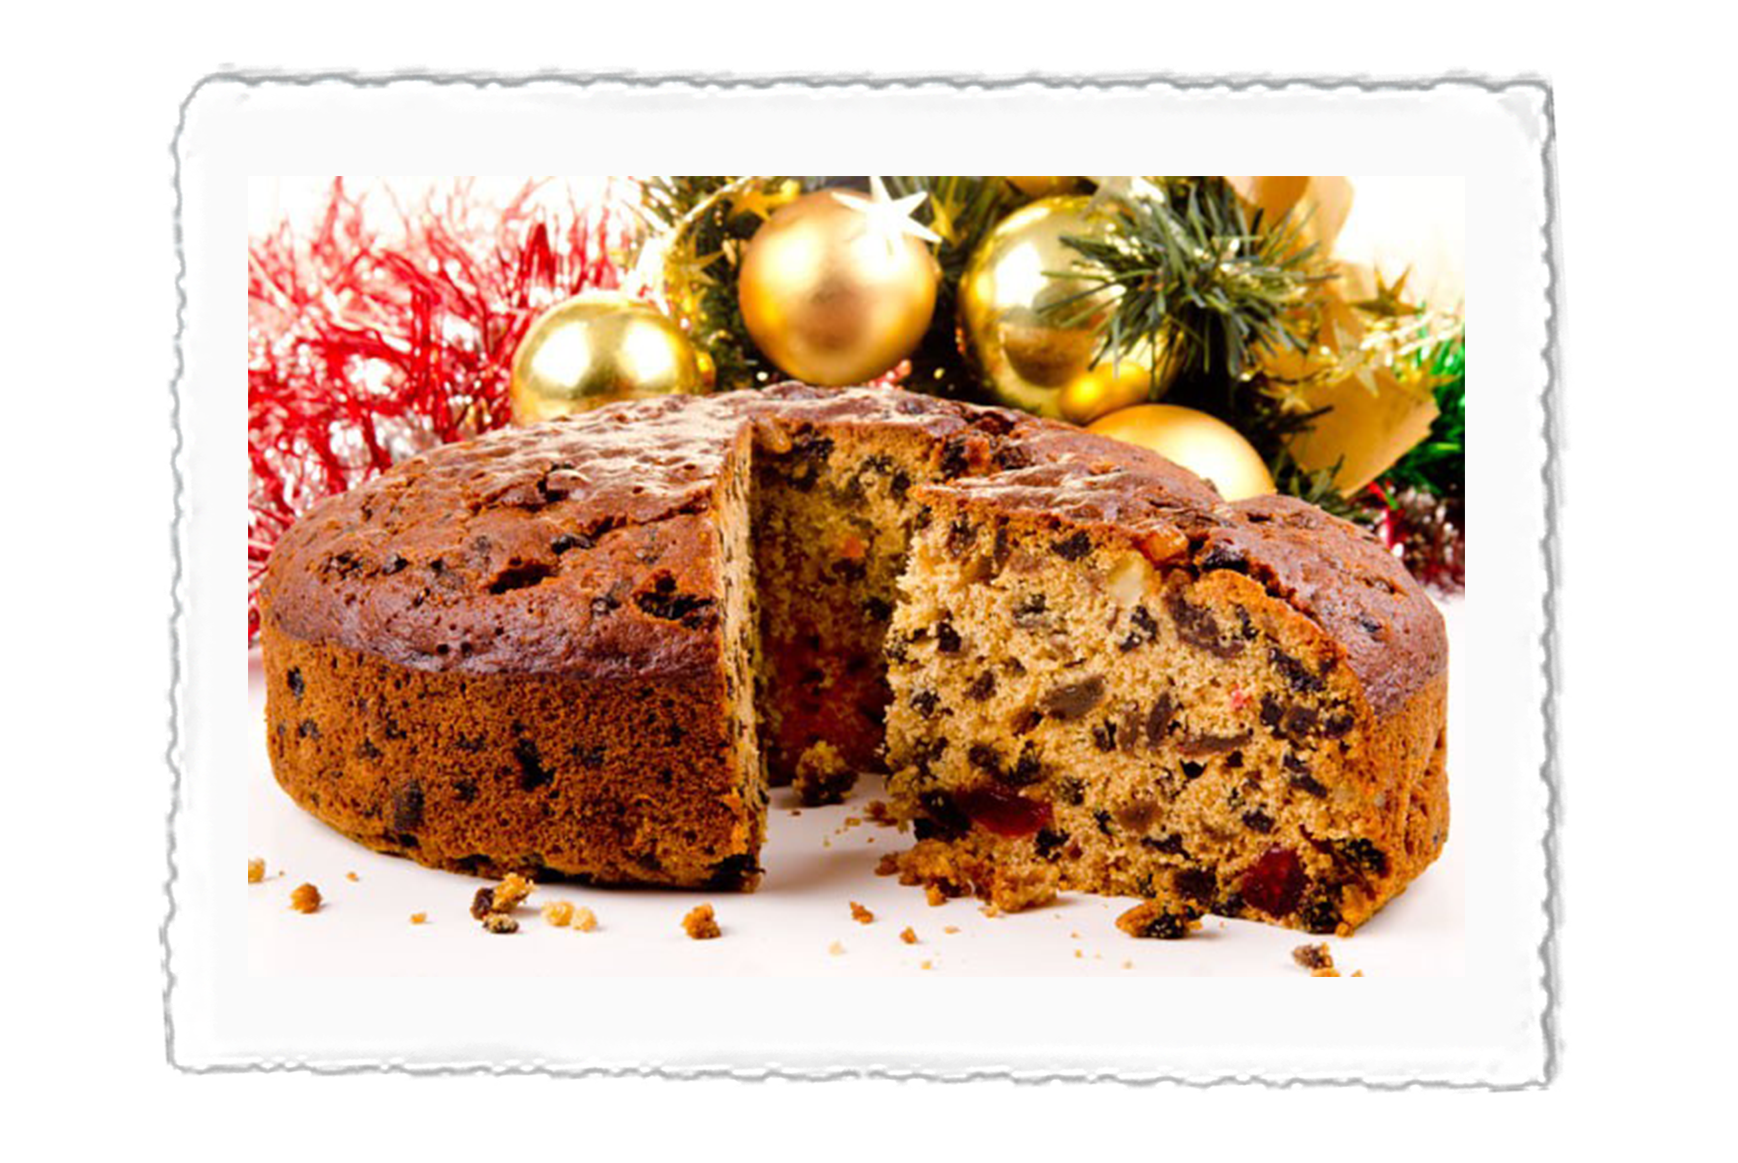 Christmas style picture of our Crazy Jack Christmas Cake